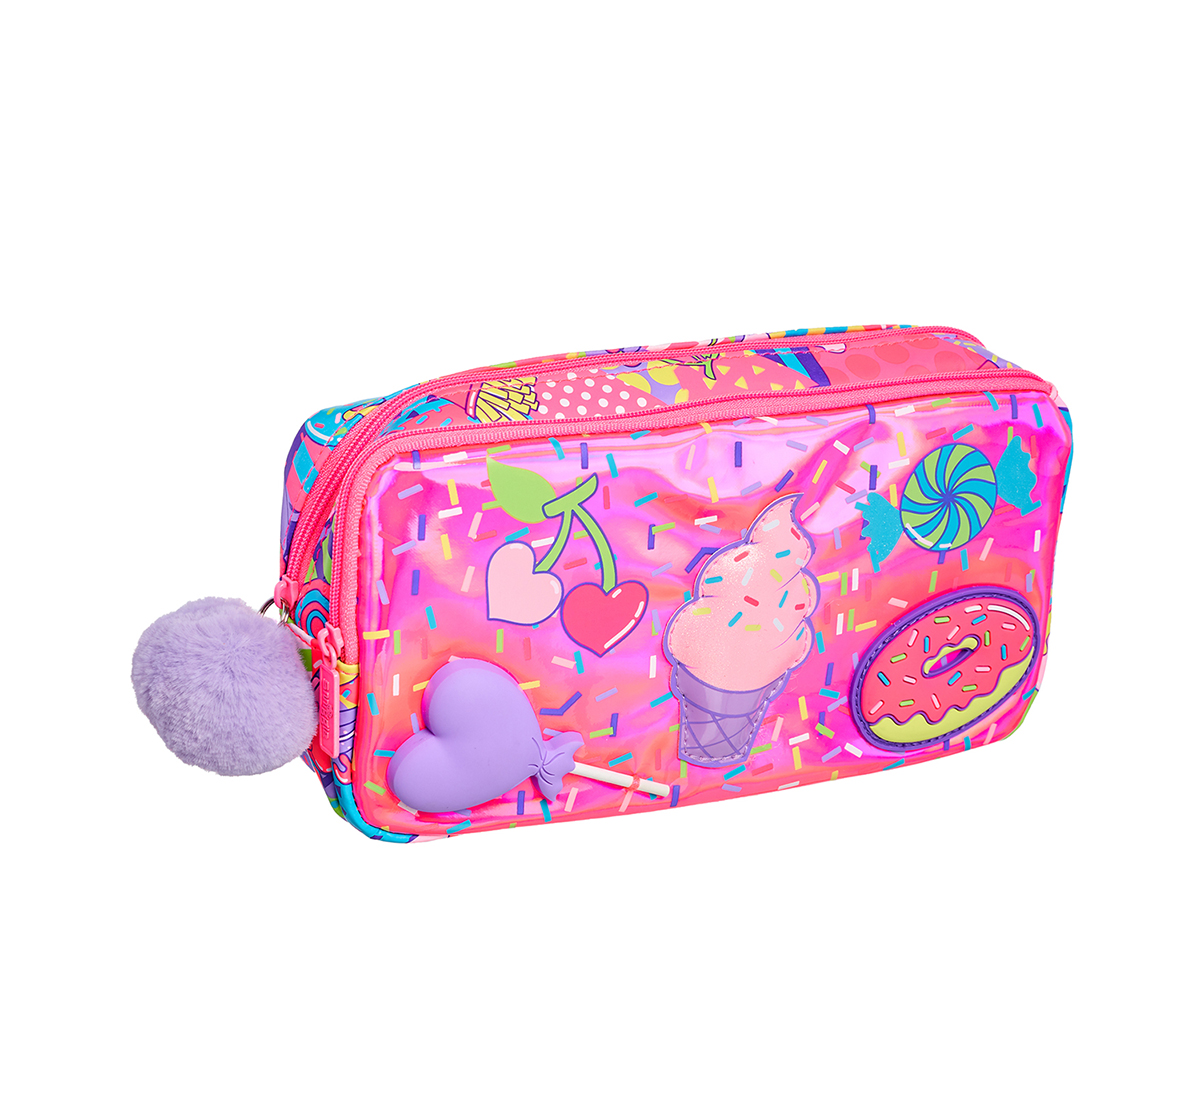 Smiggle | Smiggle Far Away Character Pencil Case - Ice-cream Print Bags for Kids age 3Y+ (Pink)